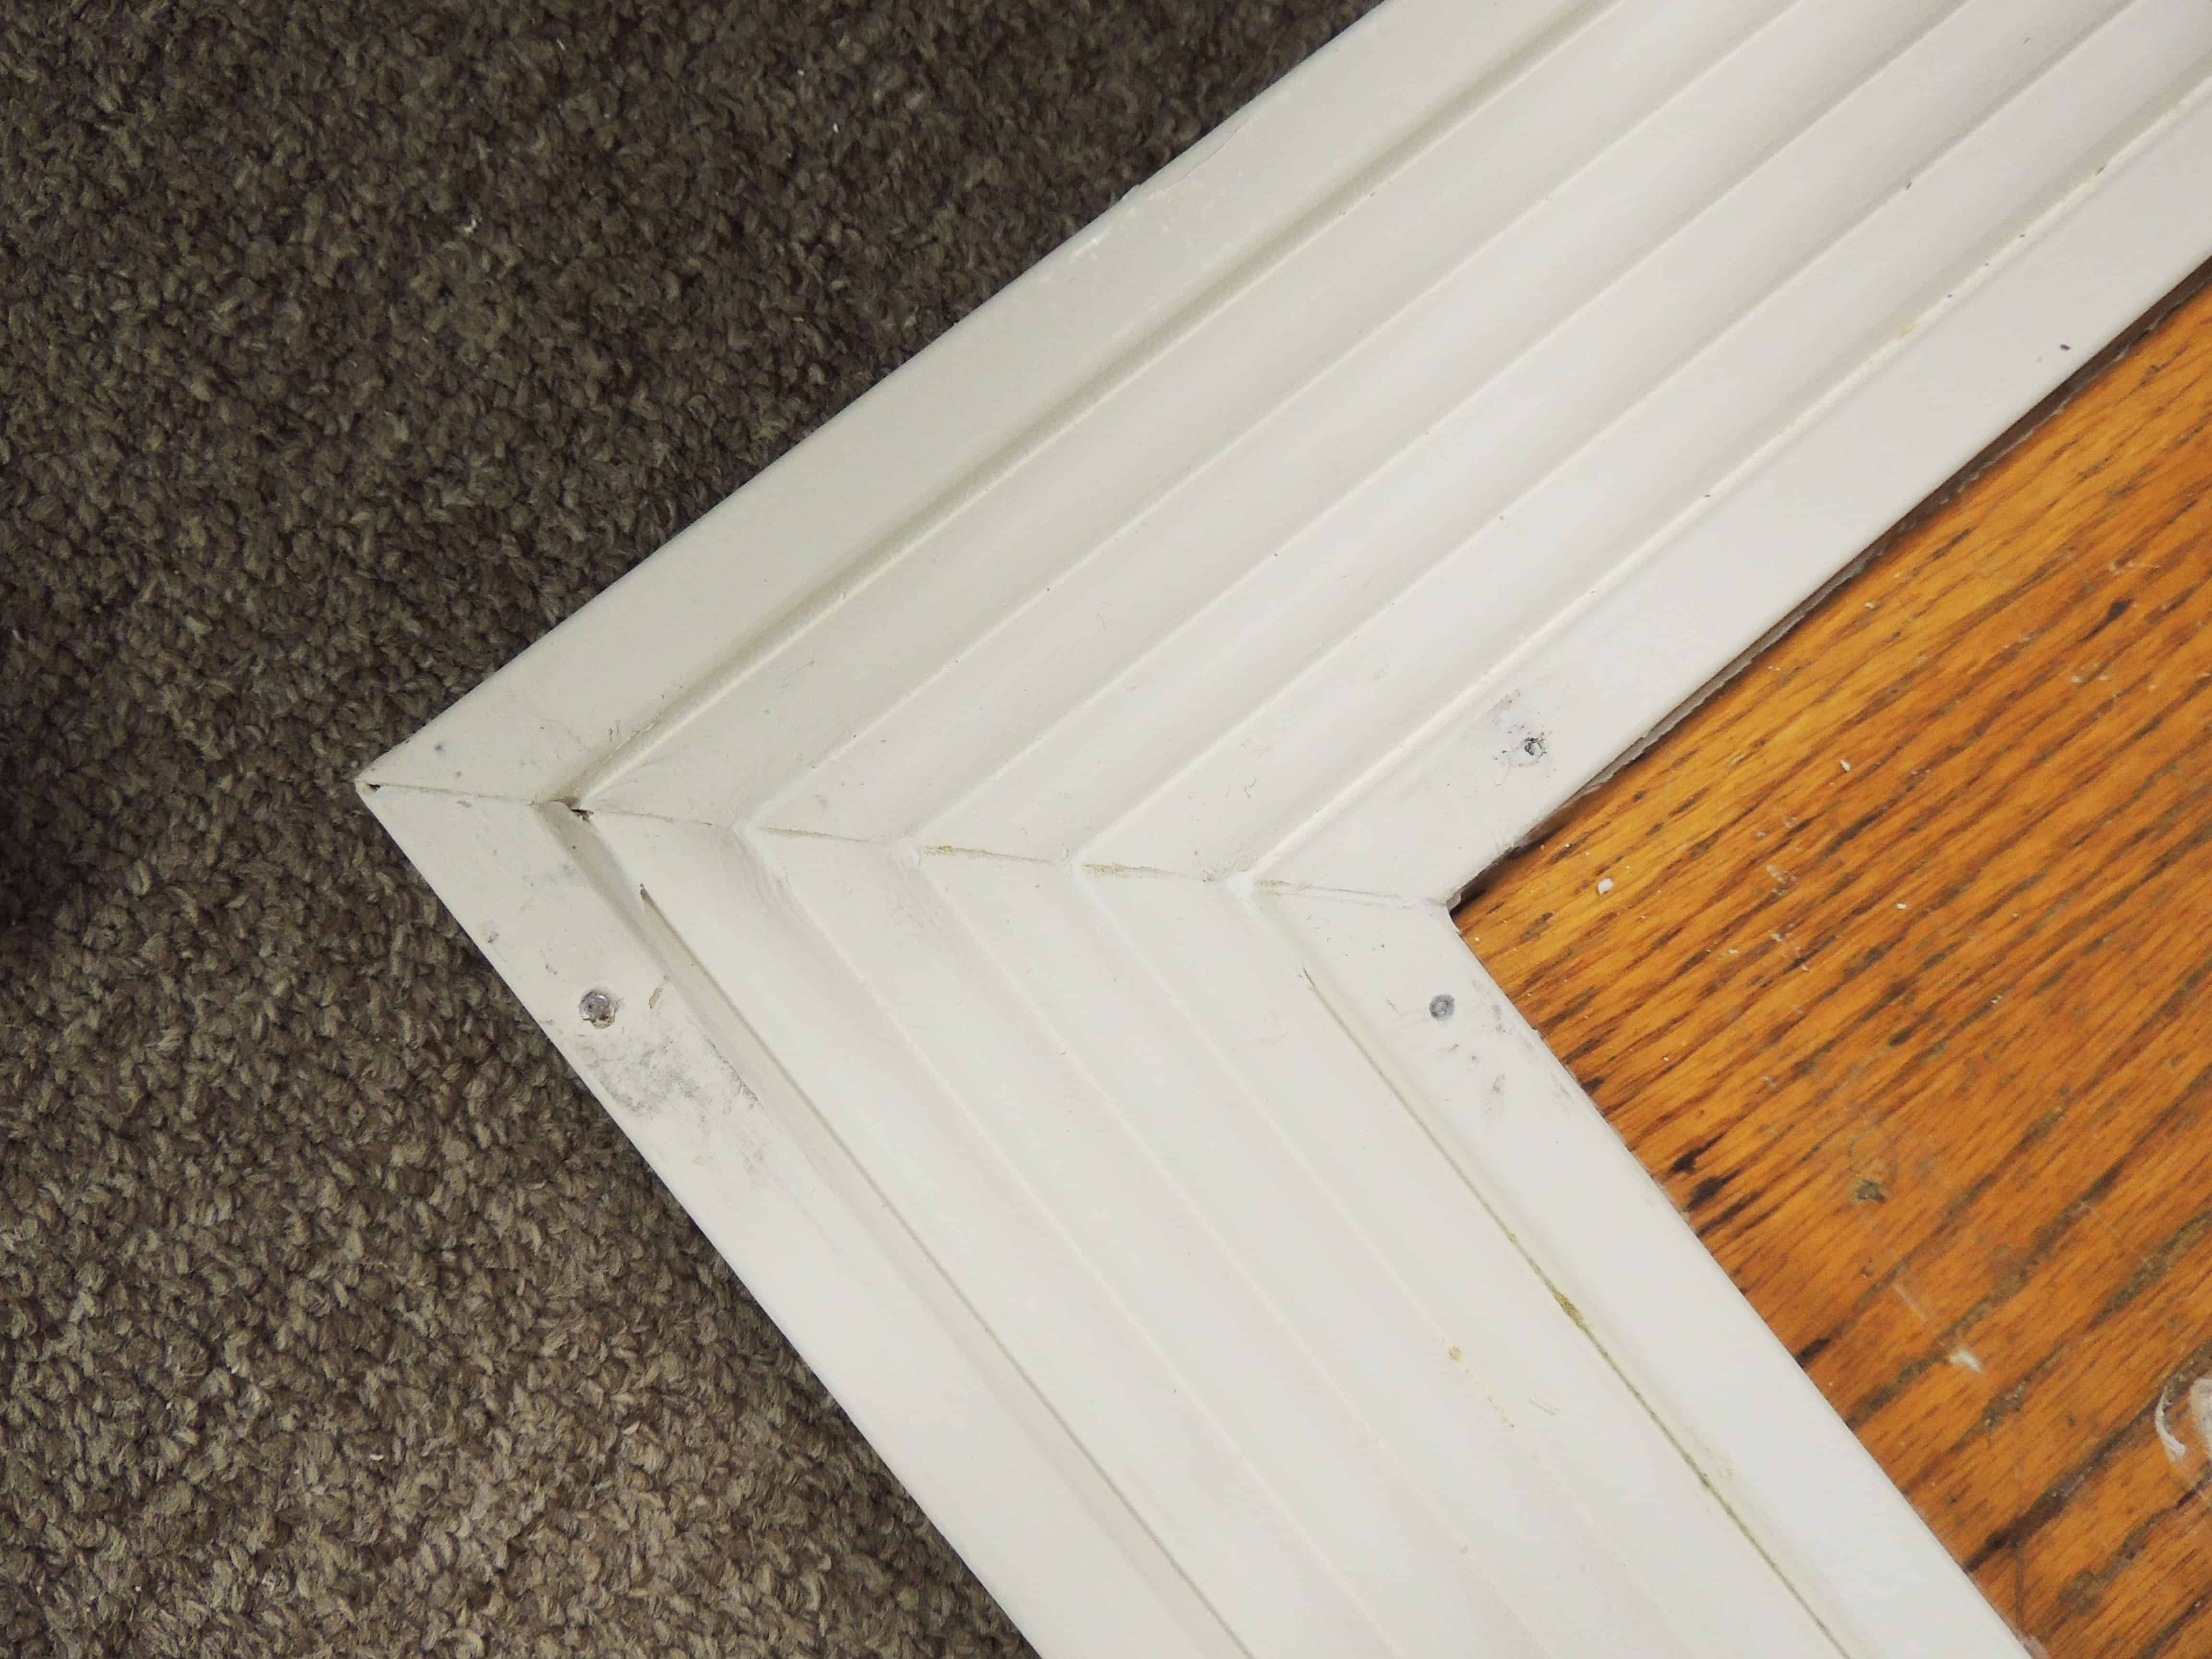 Calking the wooden frame to create a clean finish for the floor-mirror.